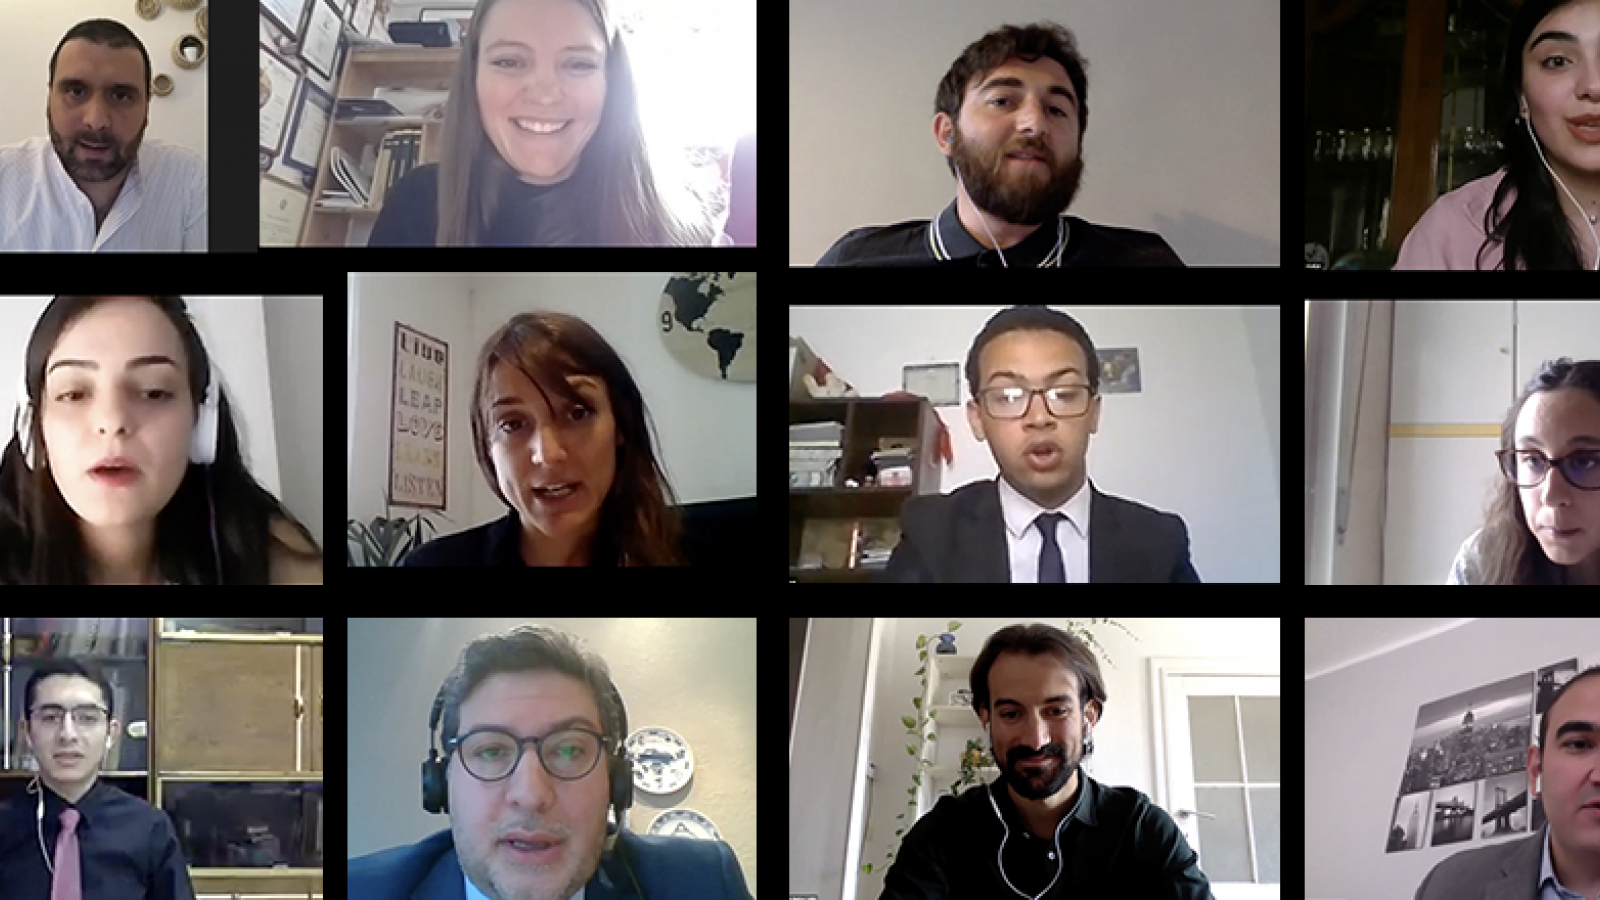 Union for the Mediterranean webinar stressed role of youth volunteers during COVID-19